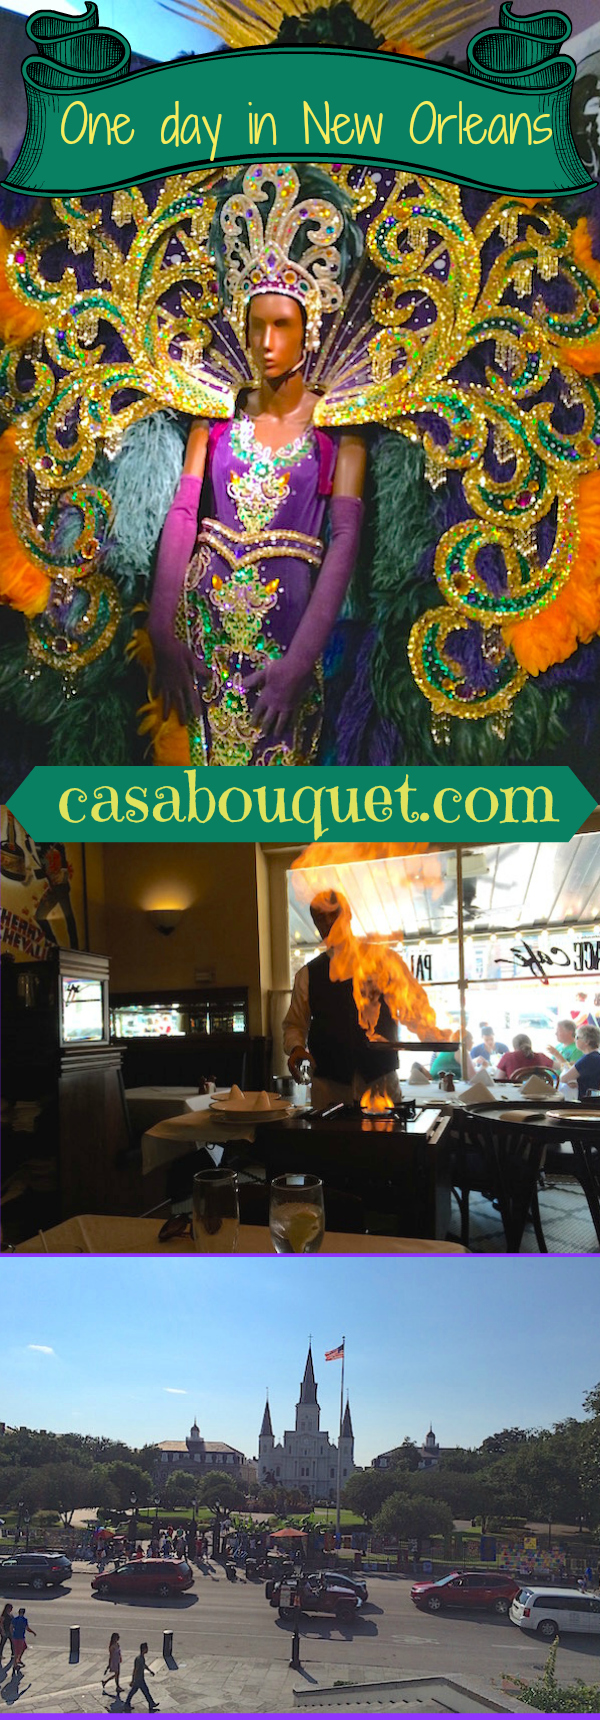 The French Quarter in New Orleans, Louisiana can be a great day trip. One day in New Orleans includes sights, Cajun and Creole food, and cocktails!